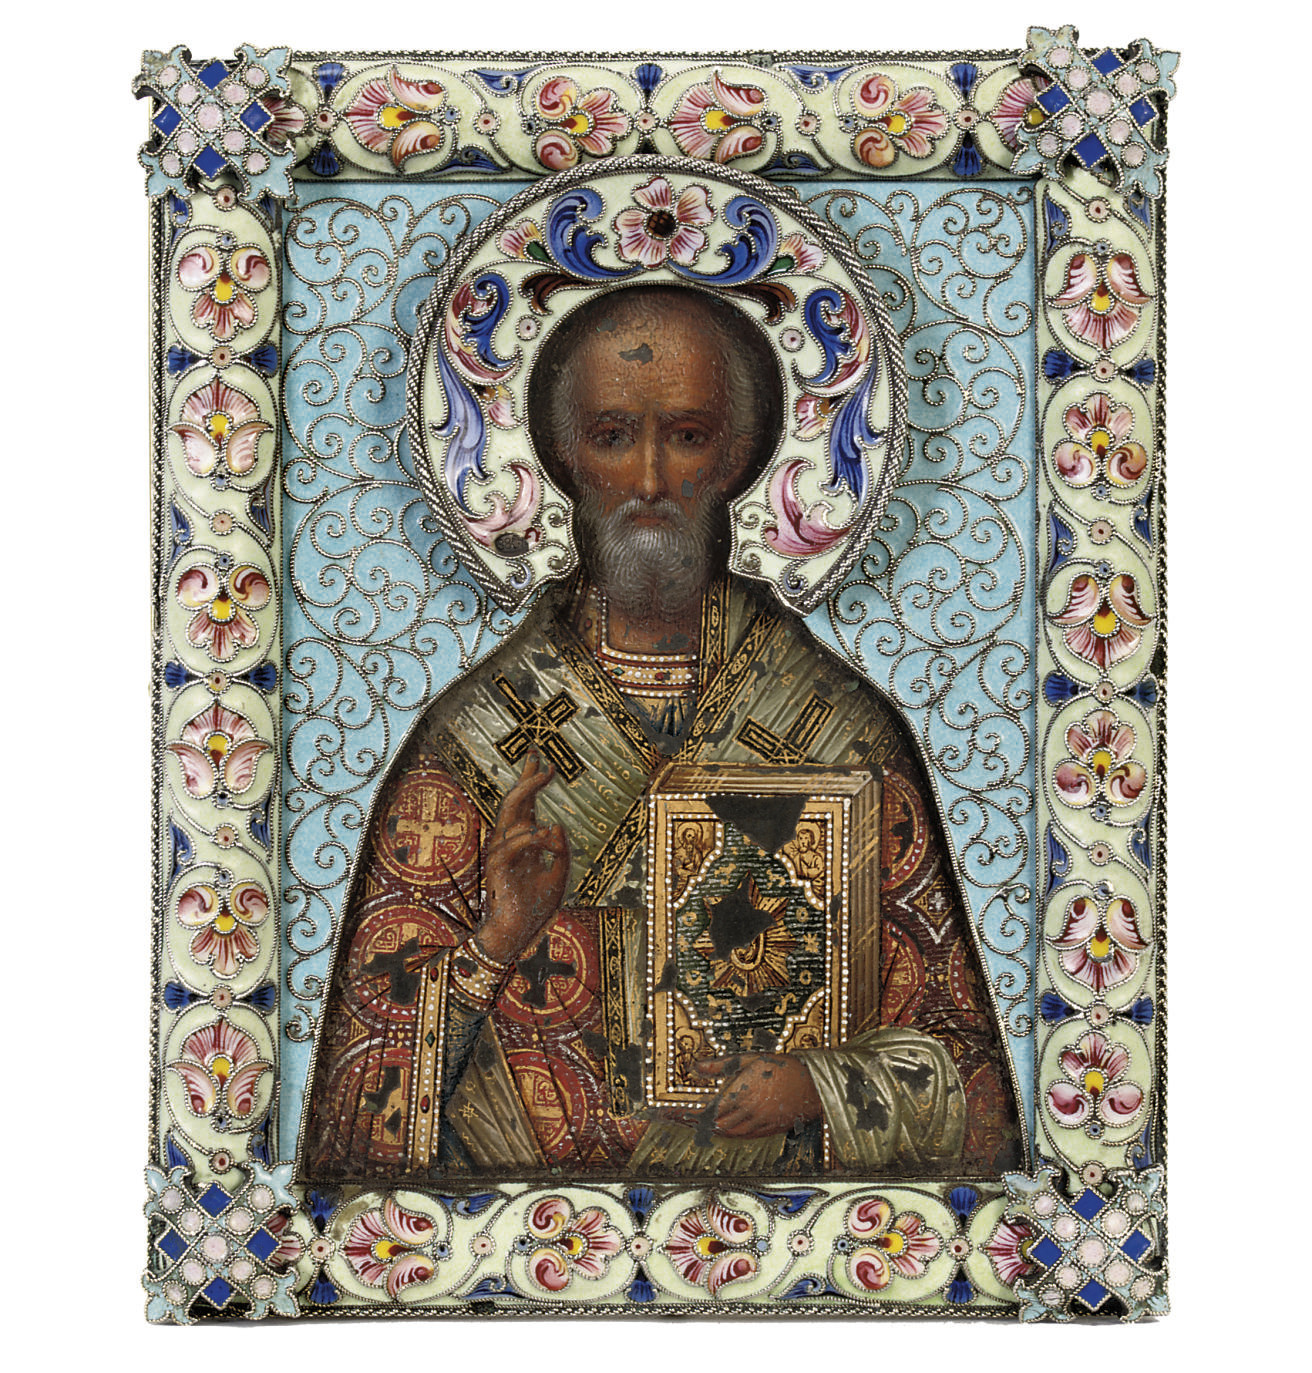 A silver-gilt and cloisonné enamel icon